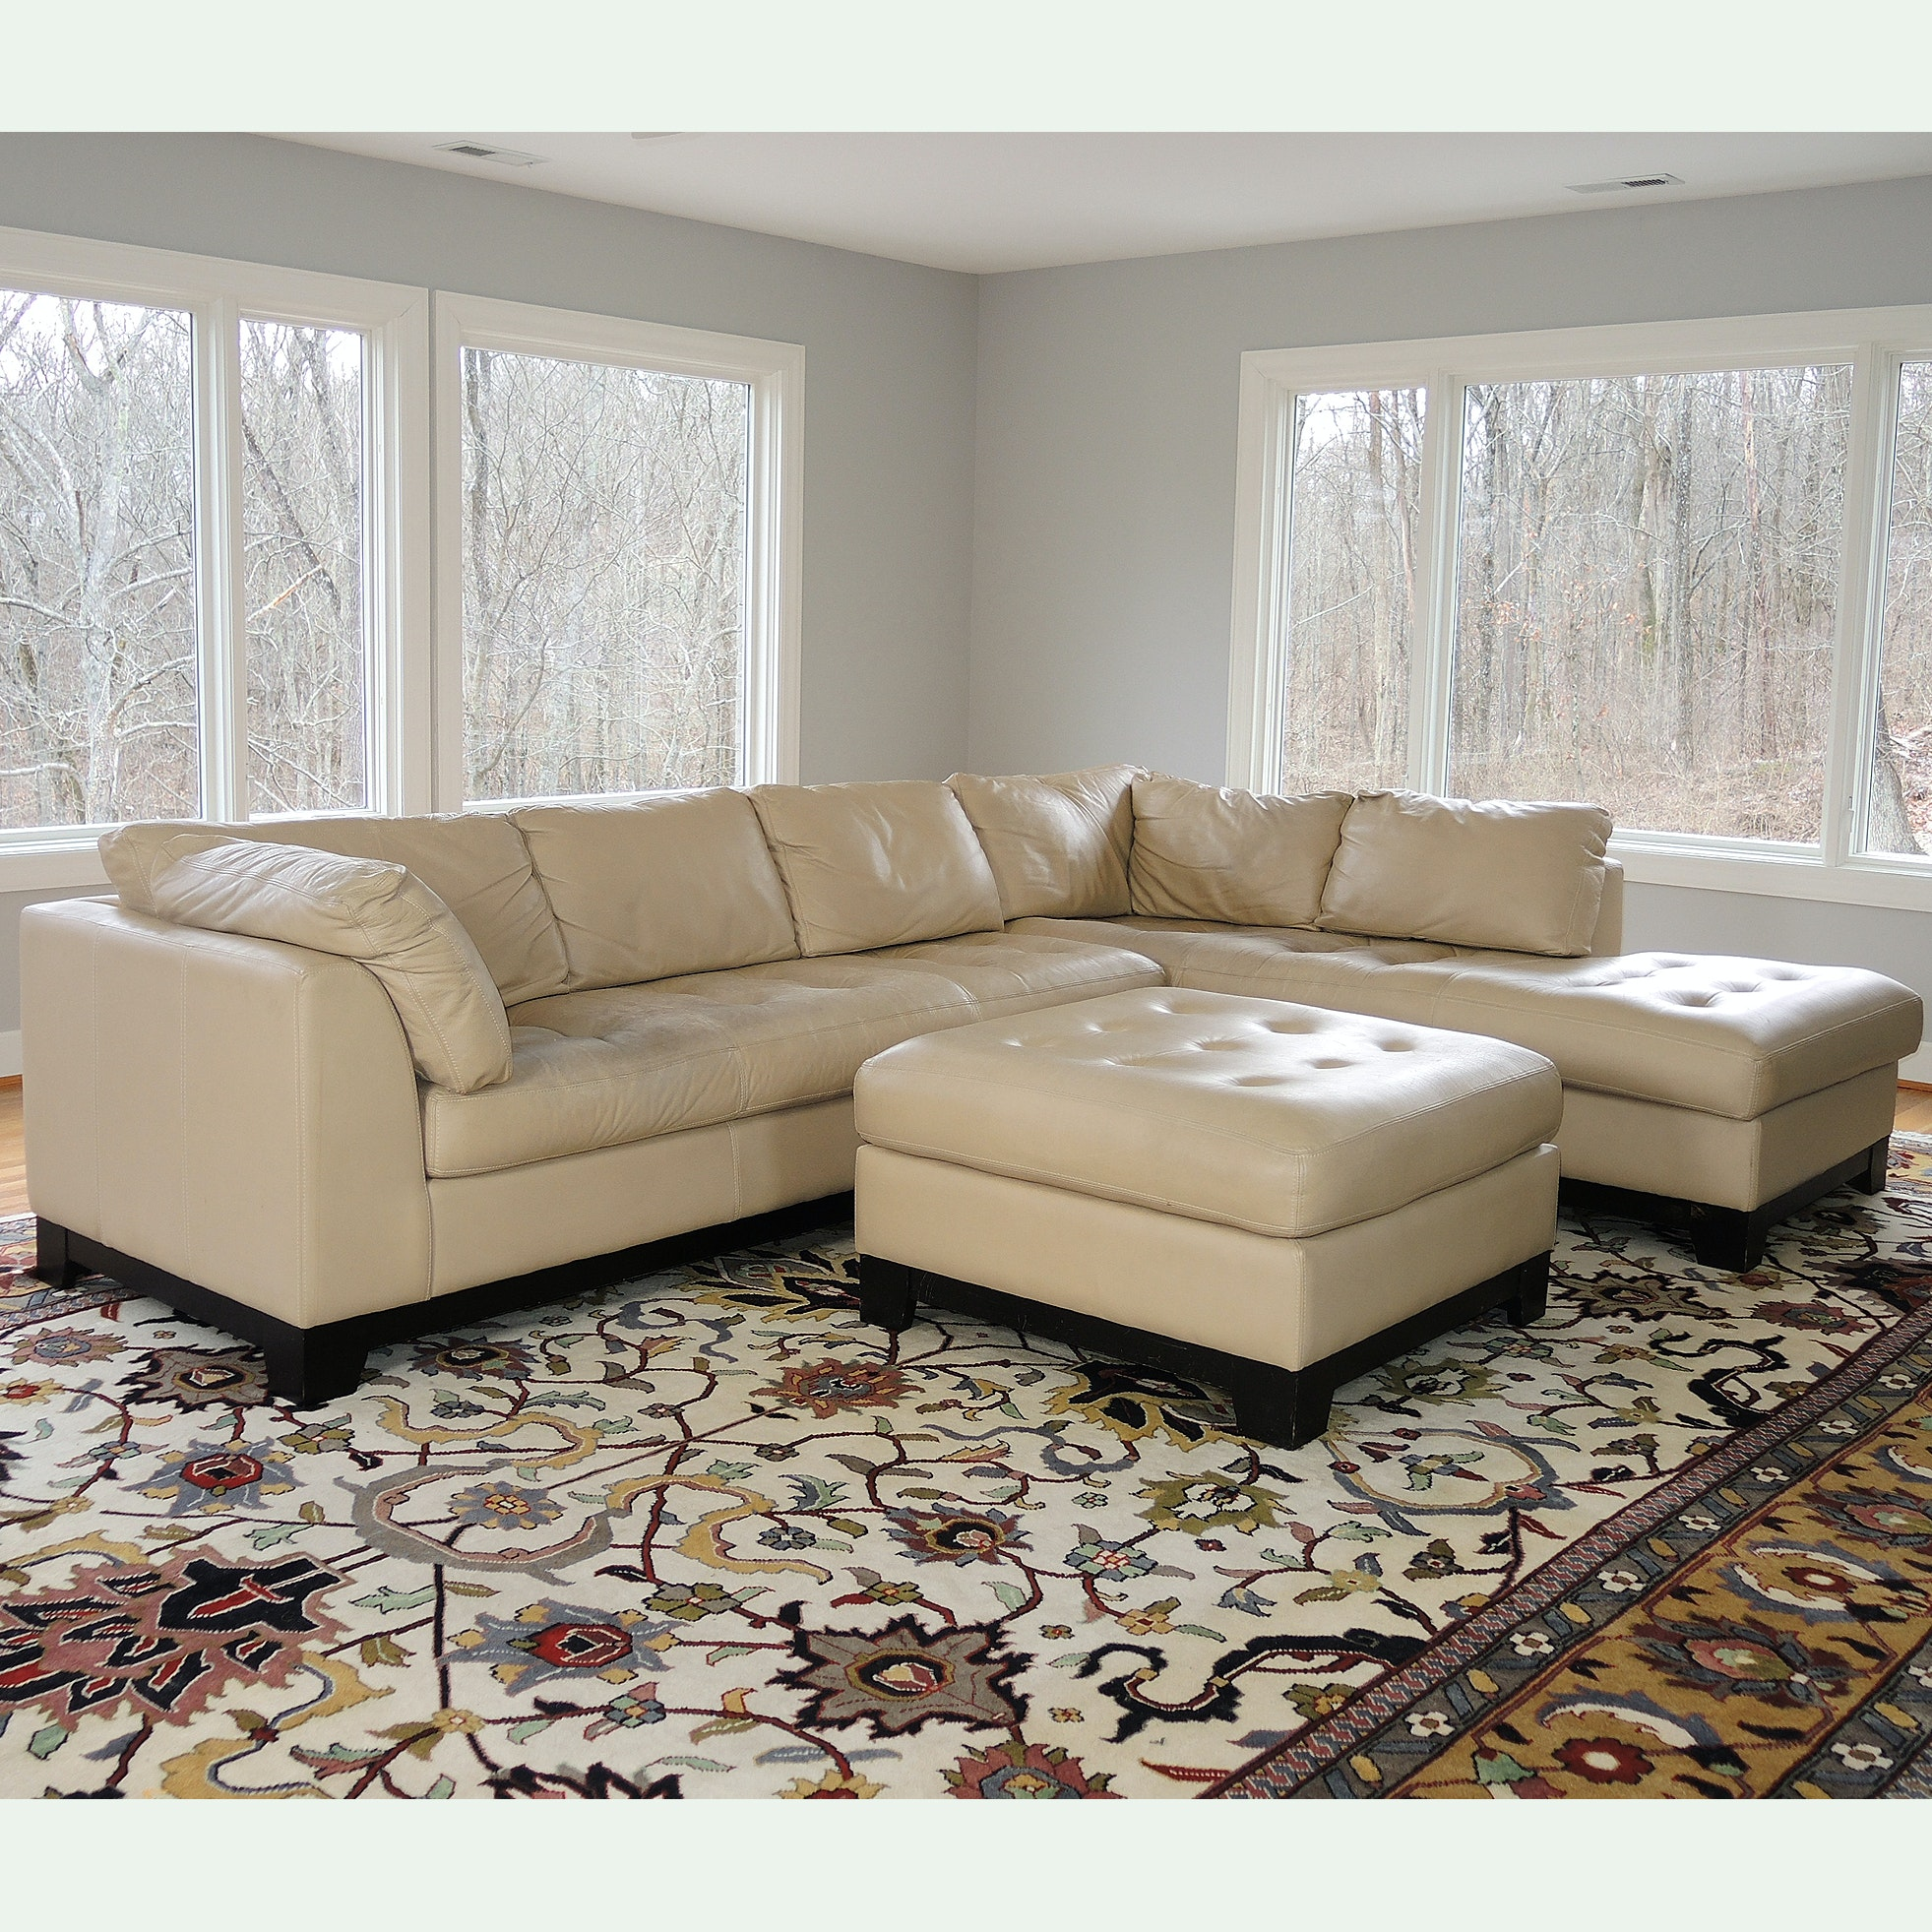 Leather Sectional Sofa, Chaise and Ottoman